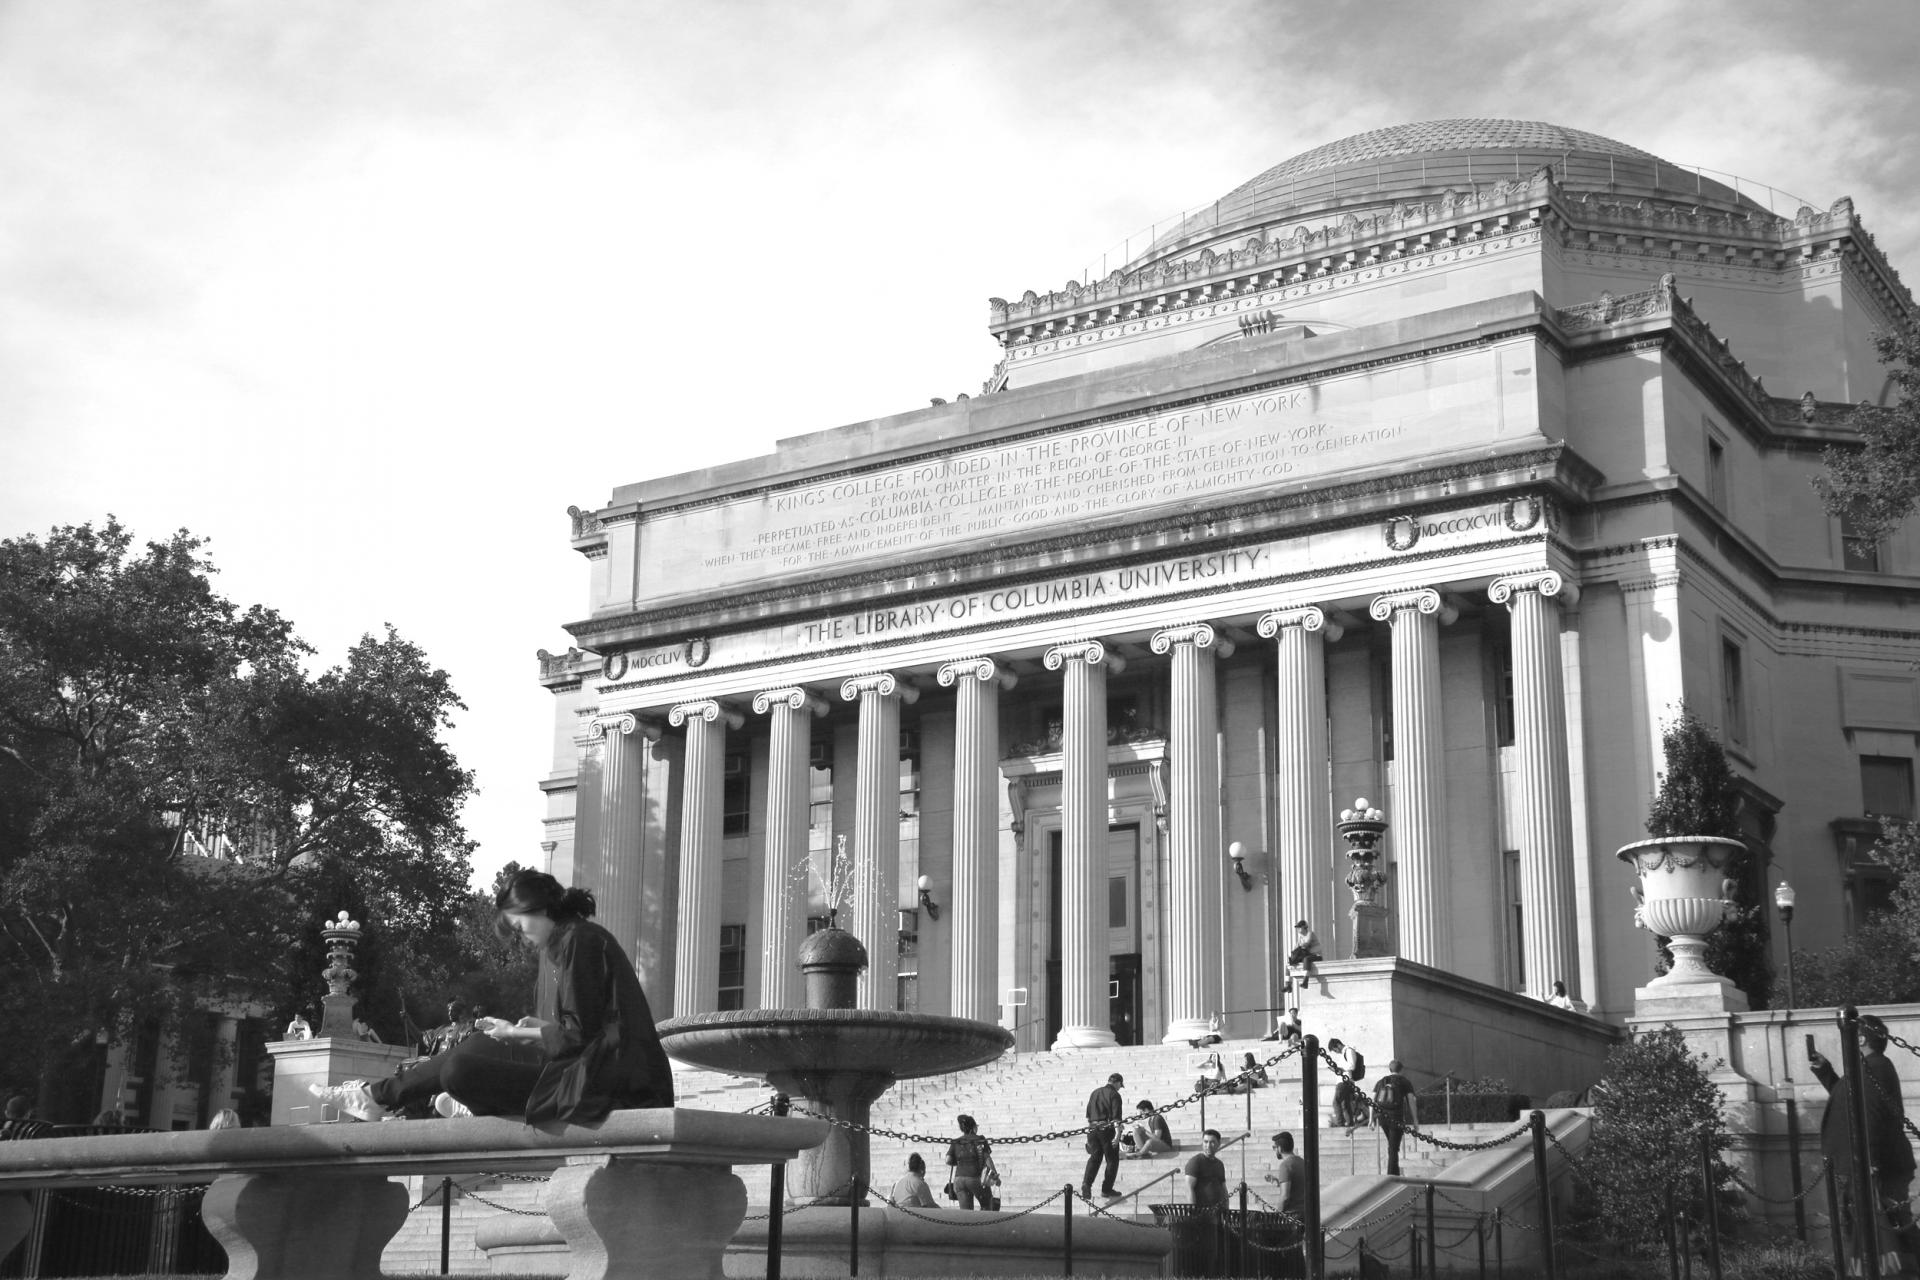 Columbia University Main Campus